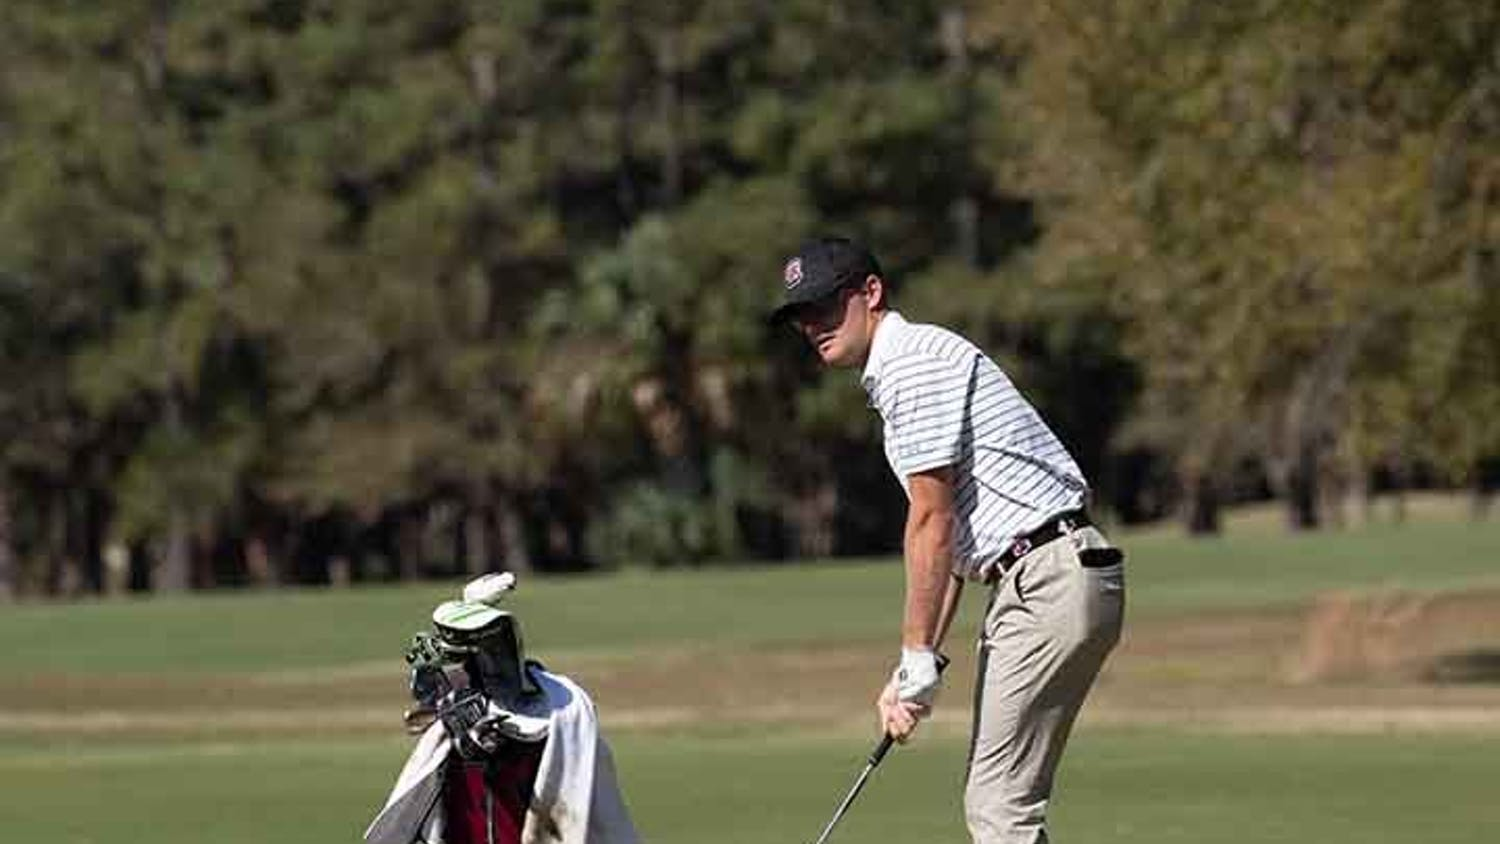 A starting player for the South Carolina golf team looks ahead as he prepares to hit the ball.